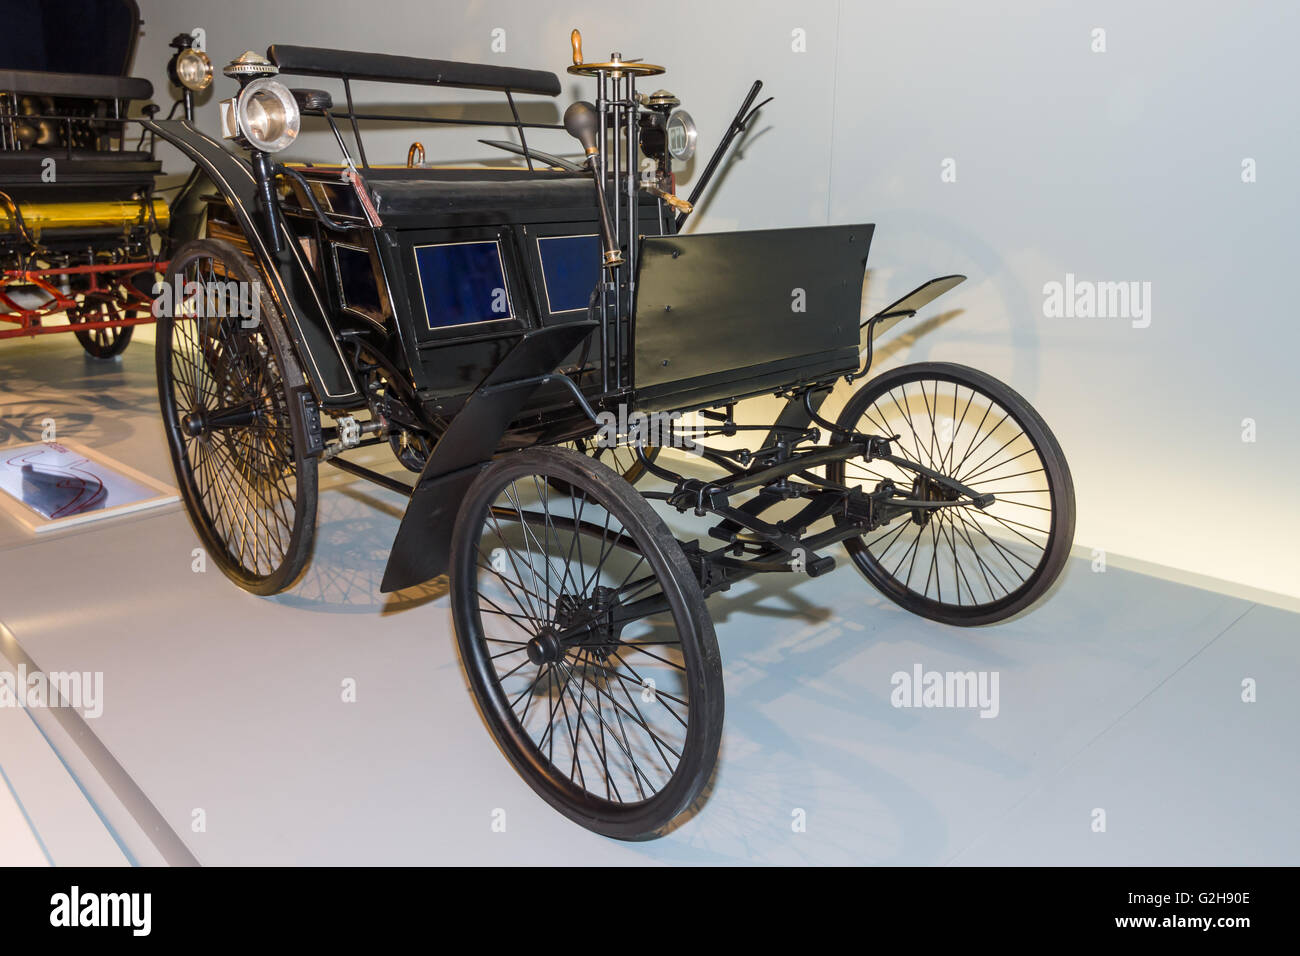 STUTTGART, GERMANY- MARCH 19, 2016: Benz Motor Velocipede also known as Velo, 1884. Mercedes-Benz Museum. - Stock Image